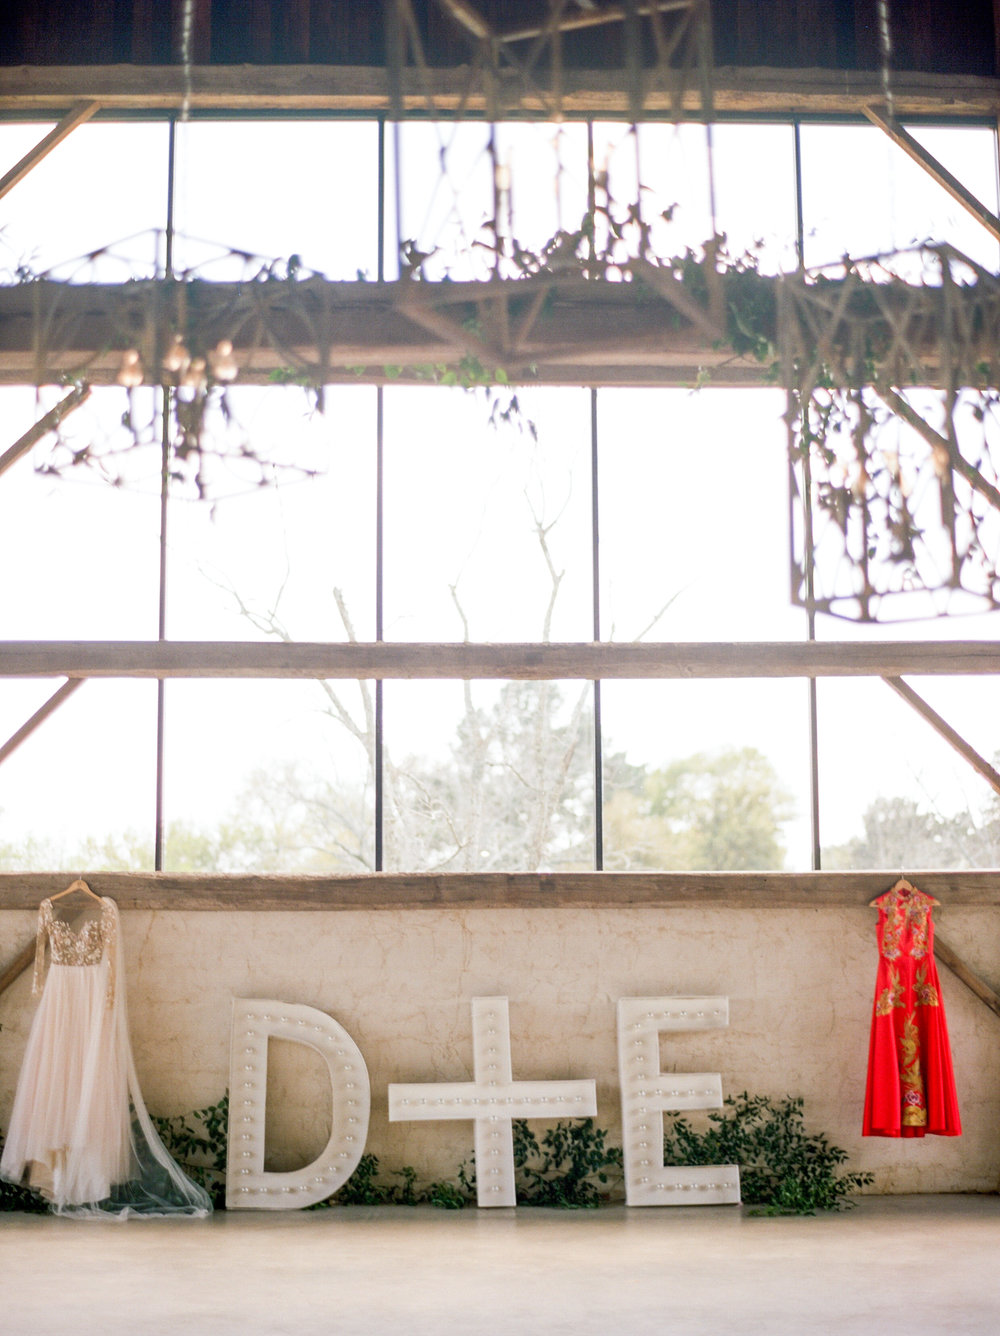 The-Knot-50-Weddings-50-States-Texas-Winner-Dana-Fernandez-photography-houston-wedding-photographer-film-fine-art-destination-6.jpg